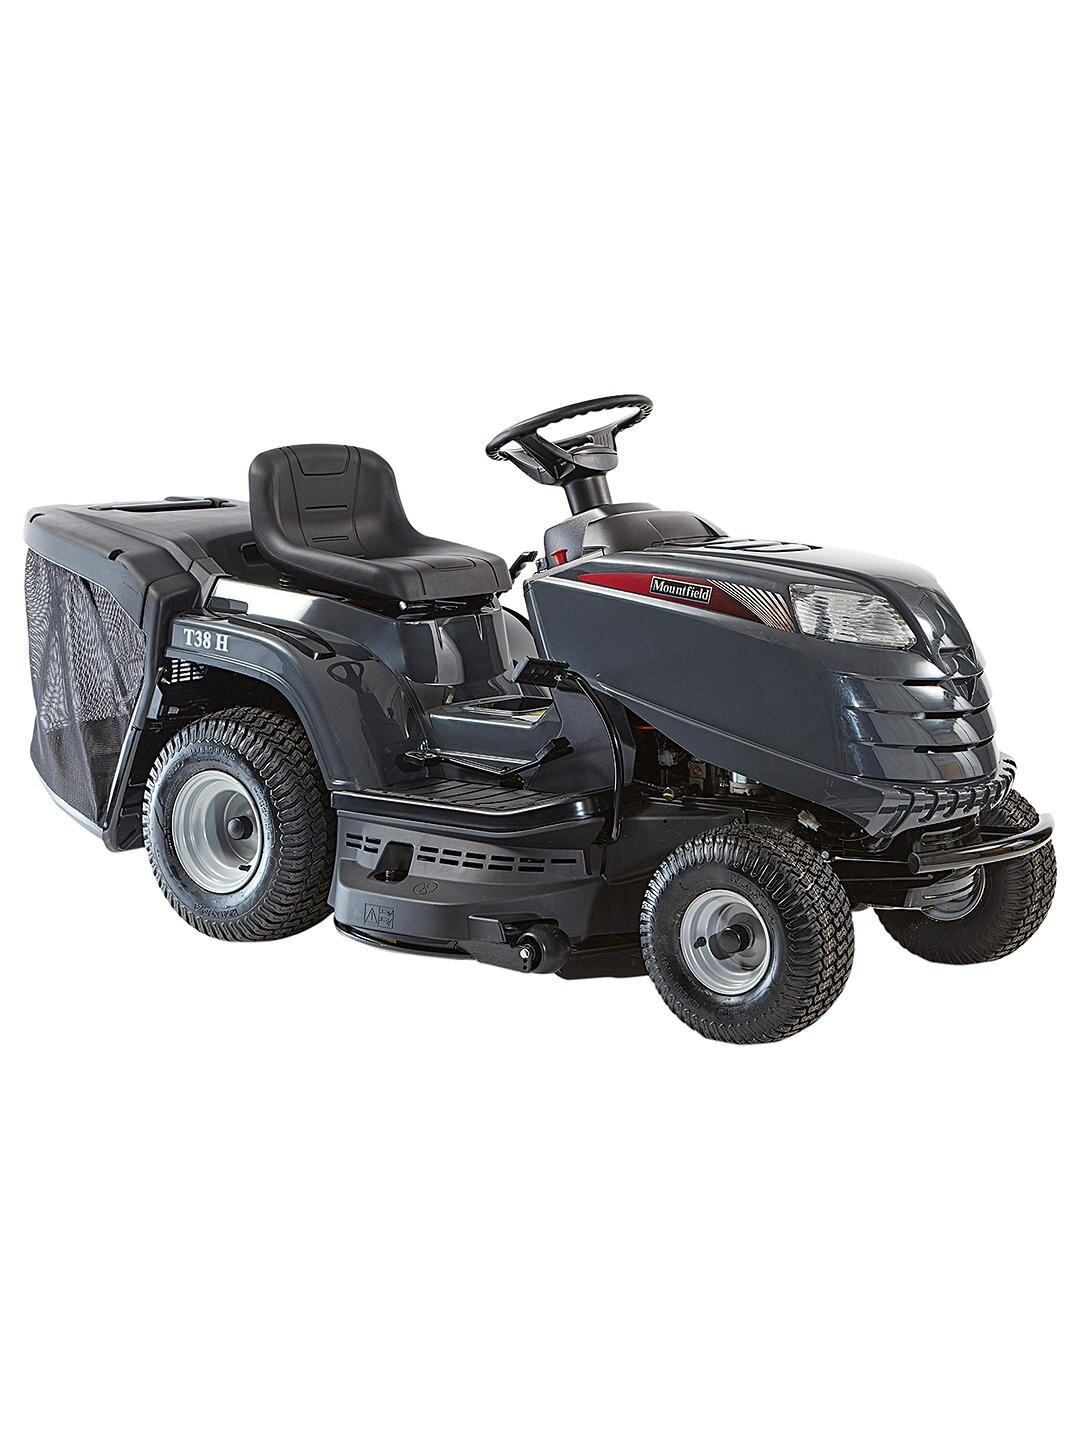 Mountfield T38H-MC Lawn Tractor - Ex Demo - ( Light Cosmetic Damage)